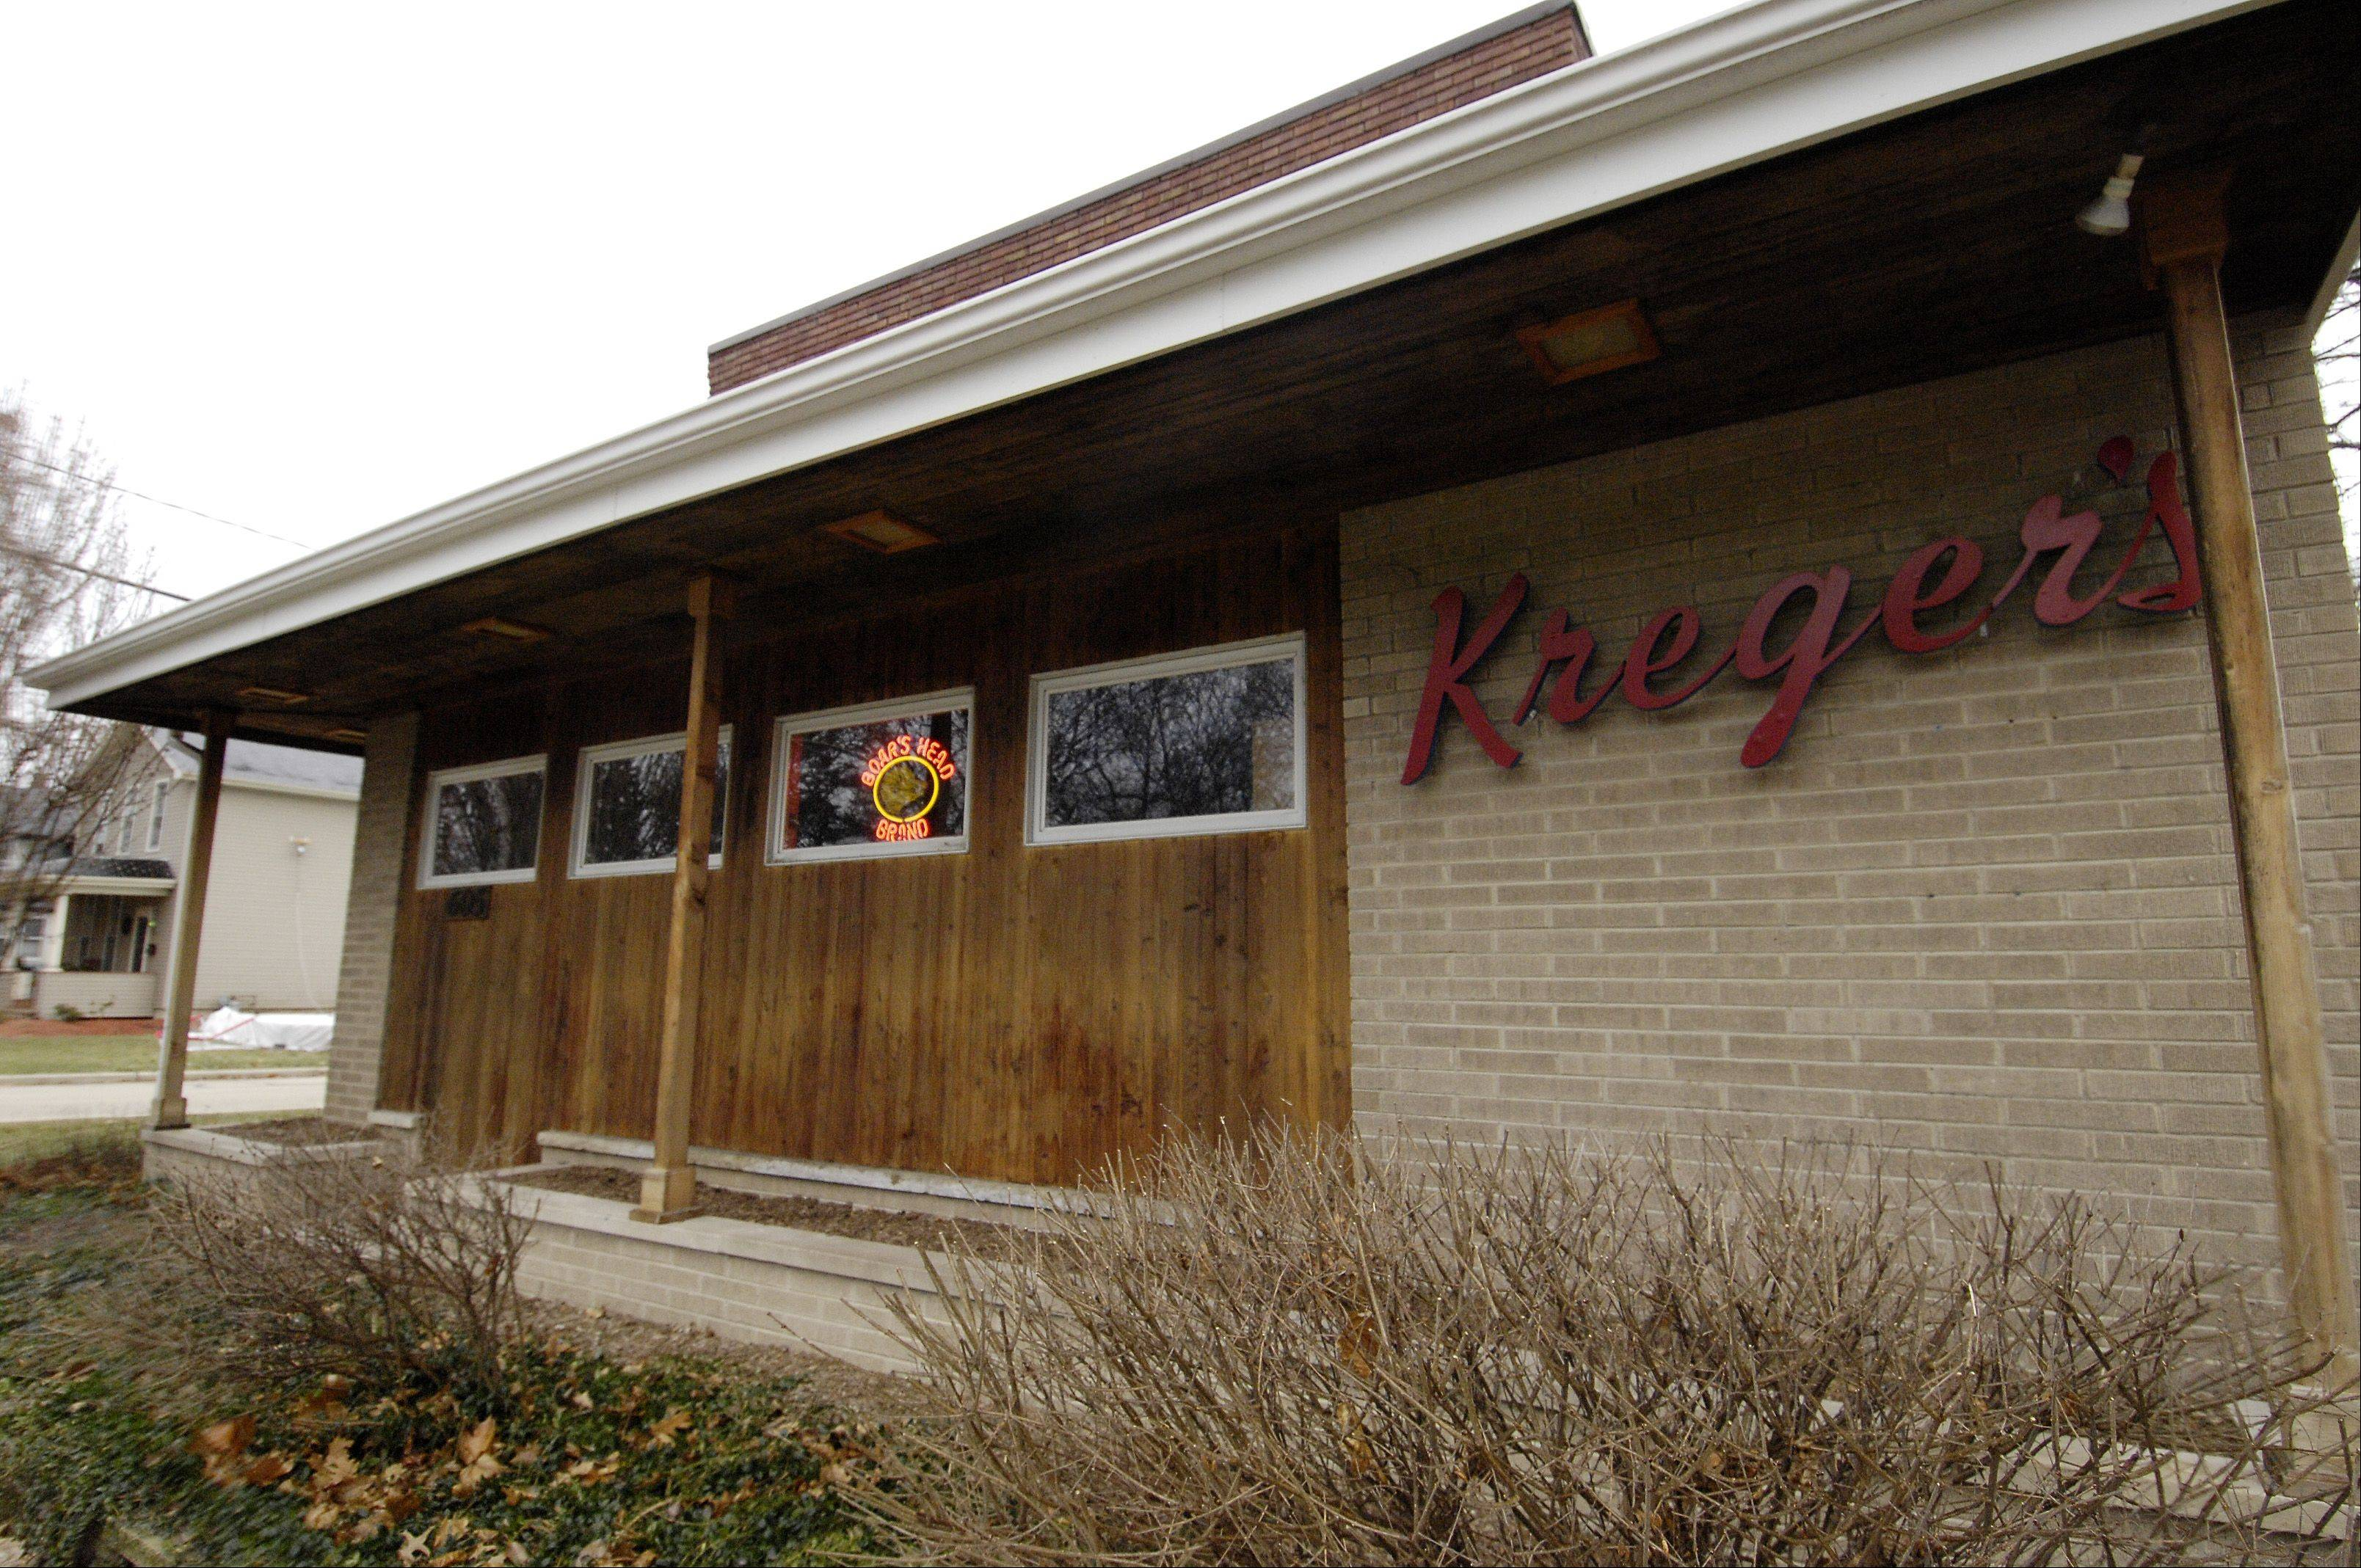 Kreger's Central Food, a family-run meat and deli business on the 600 block of Ellsworth in Naperville, closed after 120 years.